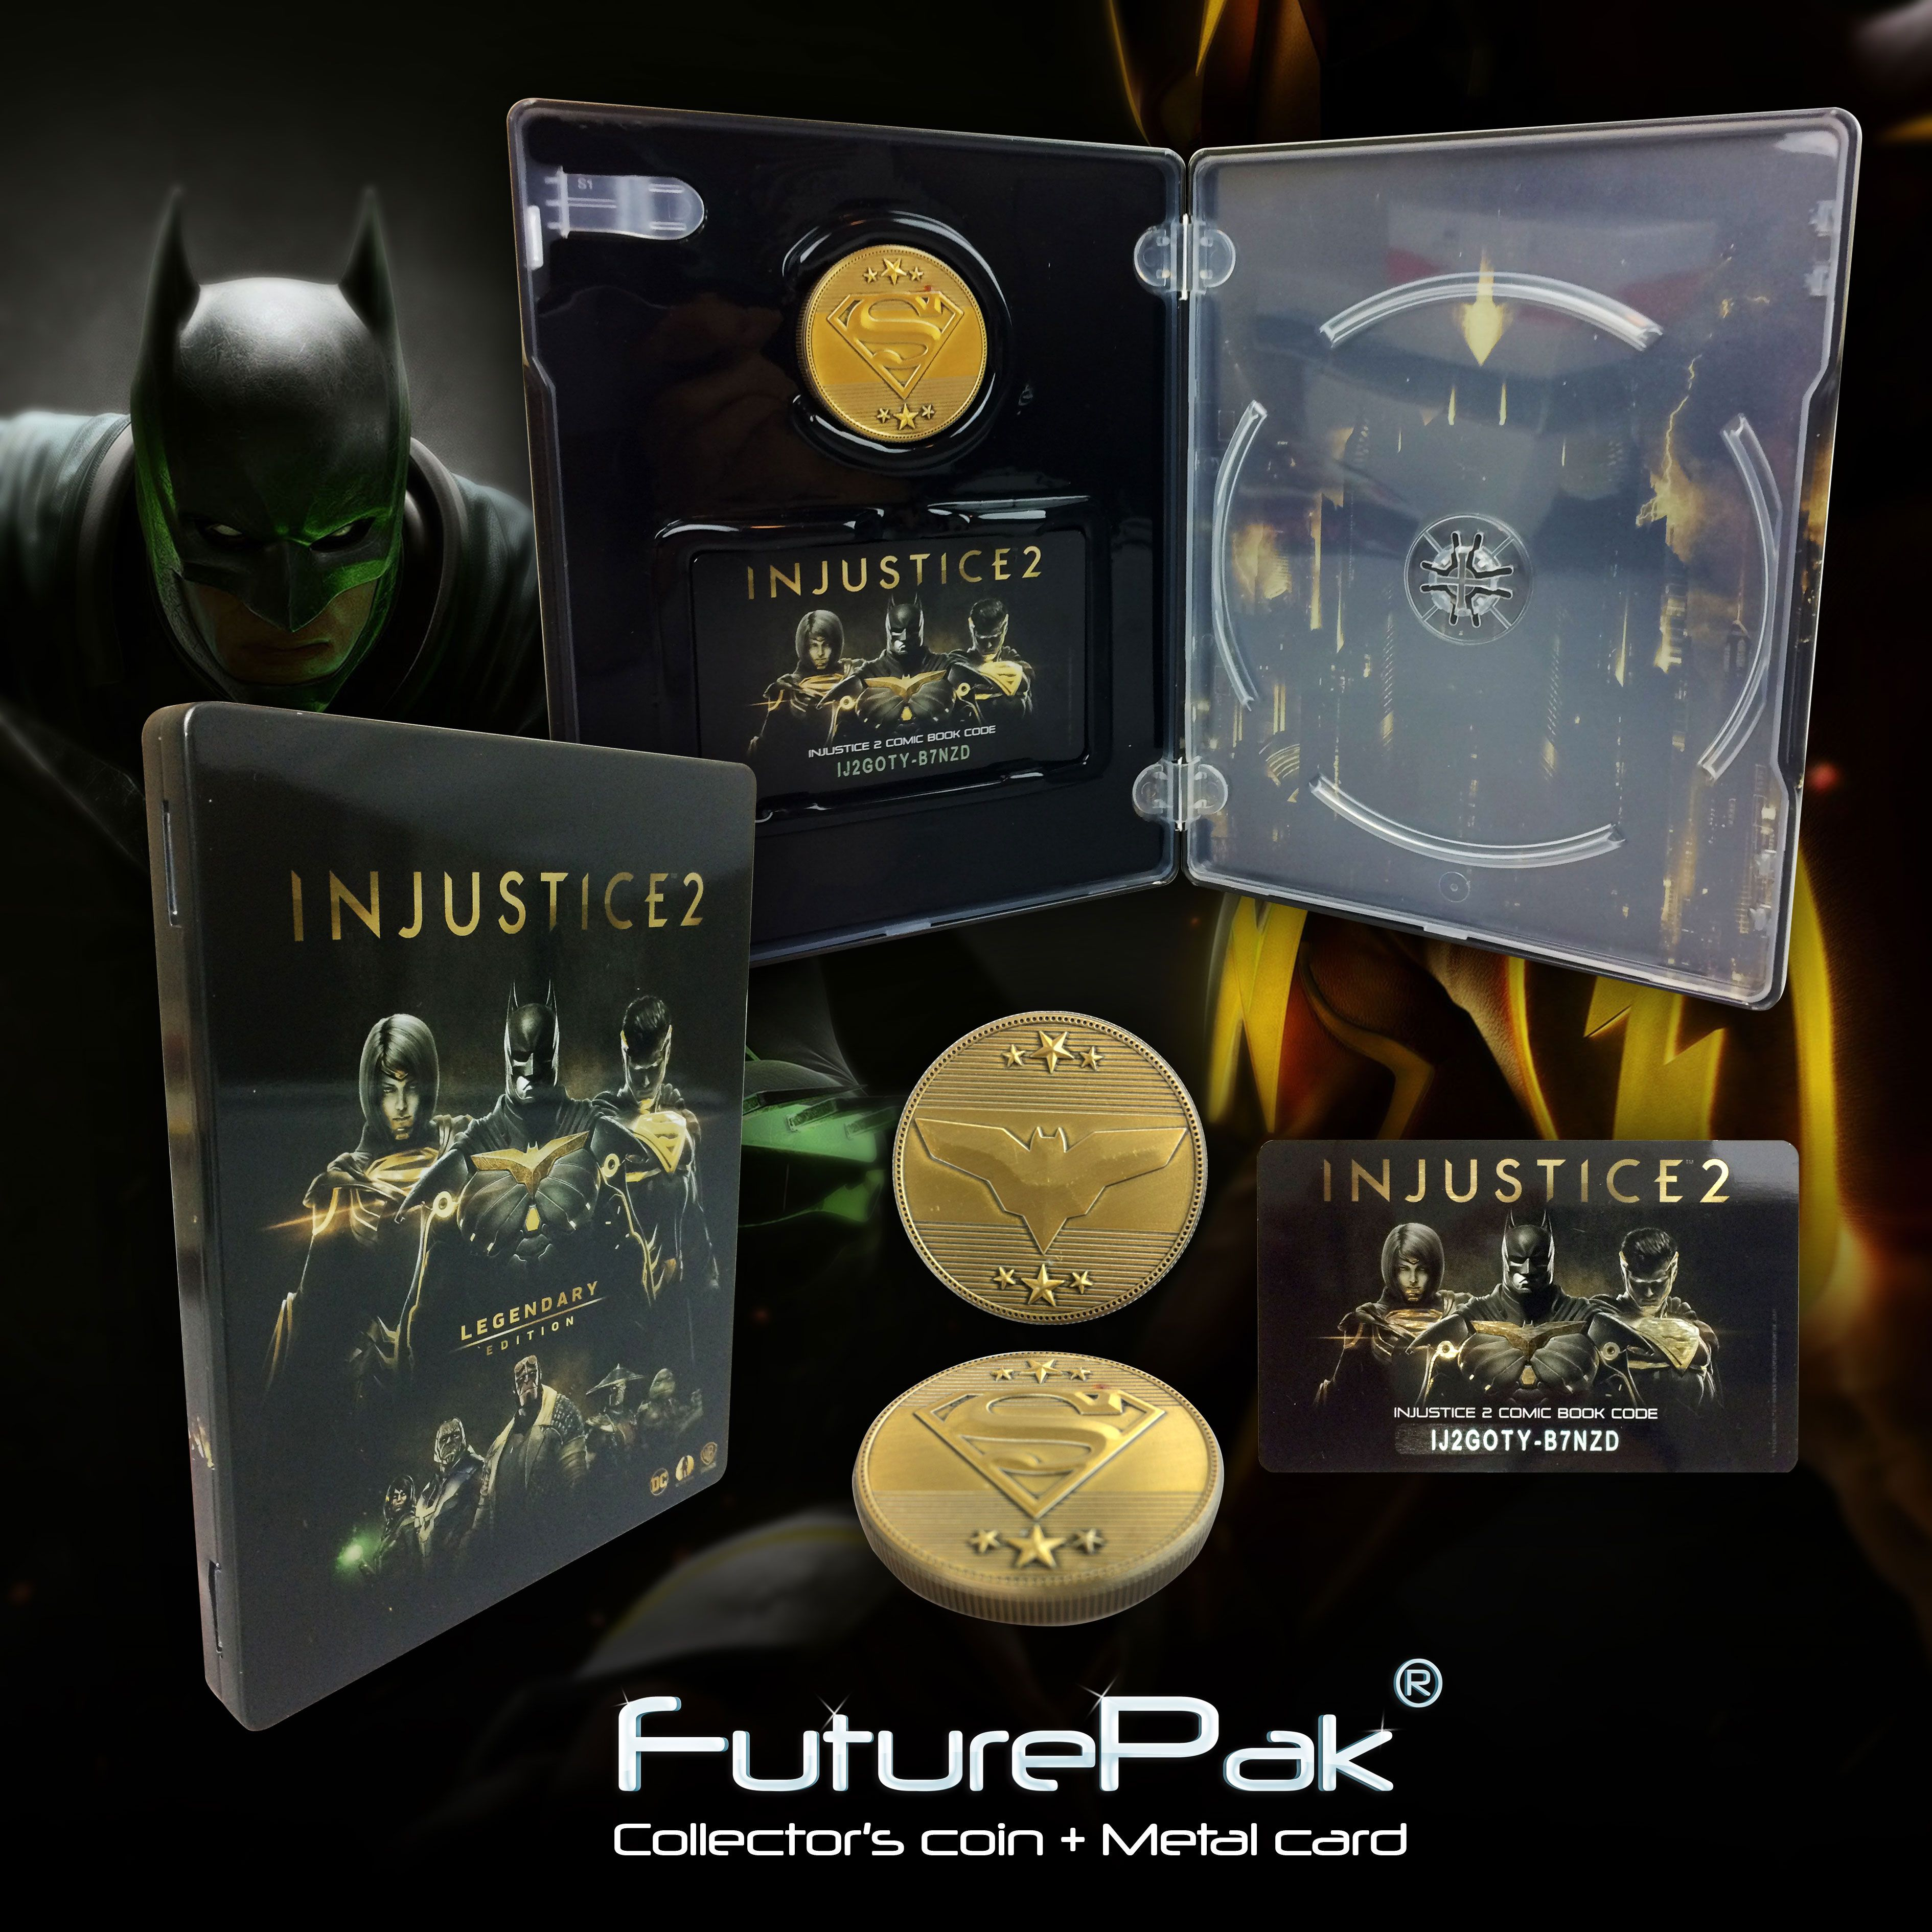 Check It Out Special Edition Futurepak With Collector S Coin And Metal Card For Injustice 2 Legendary Edition No Injustice 2 Action Figures Cards